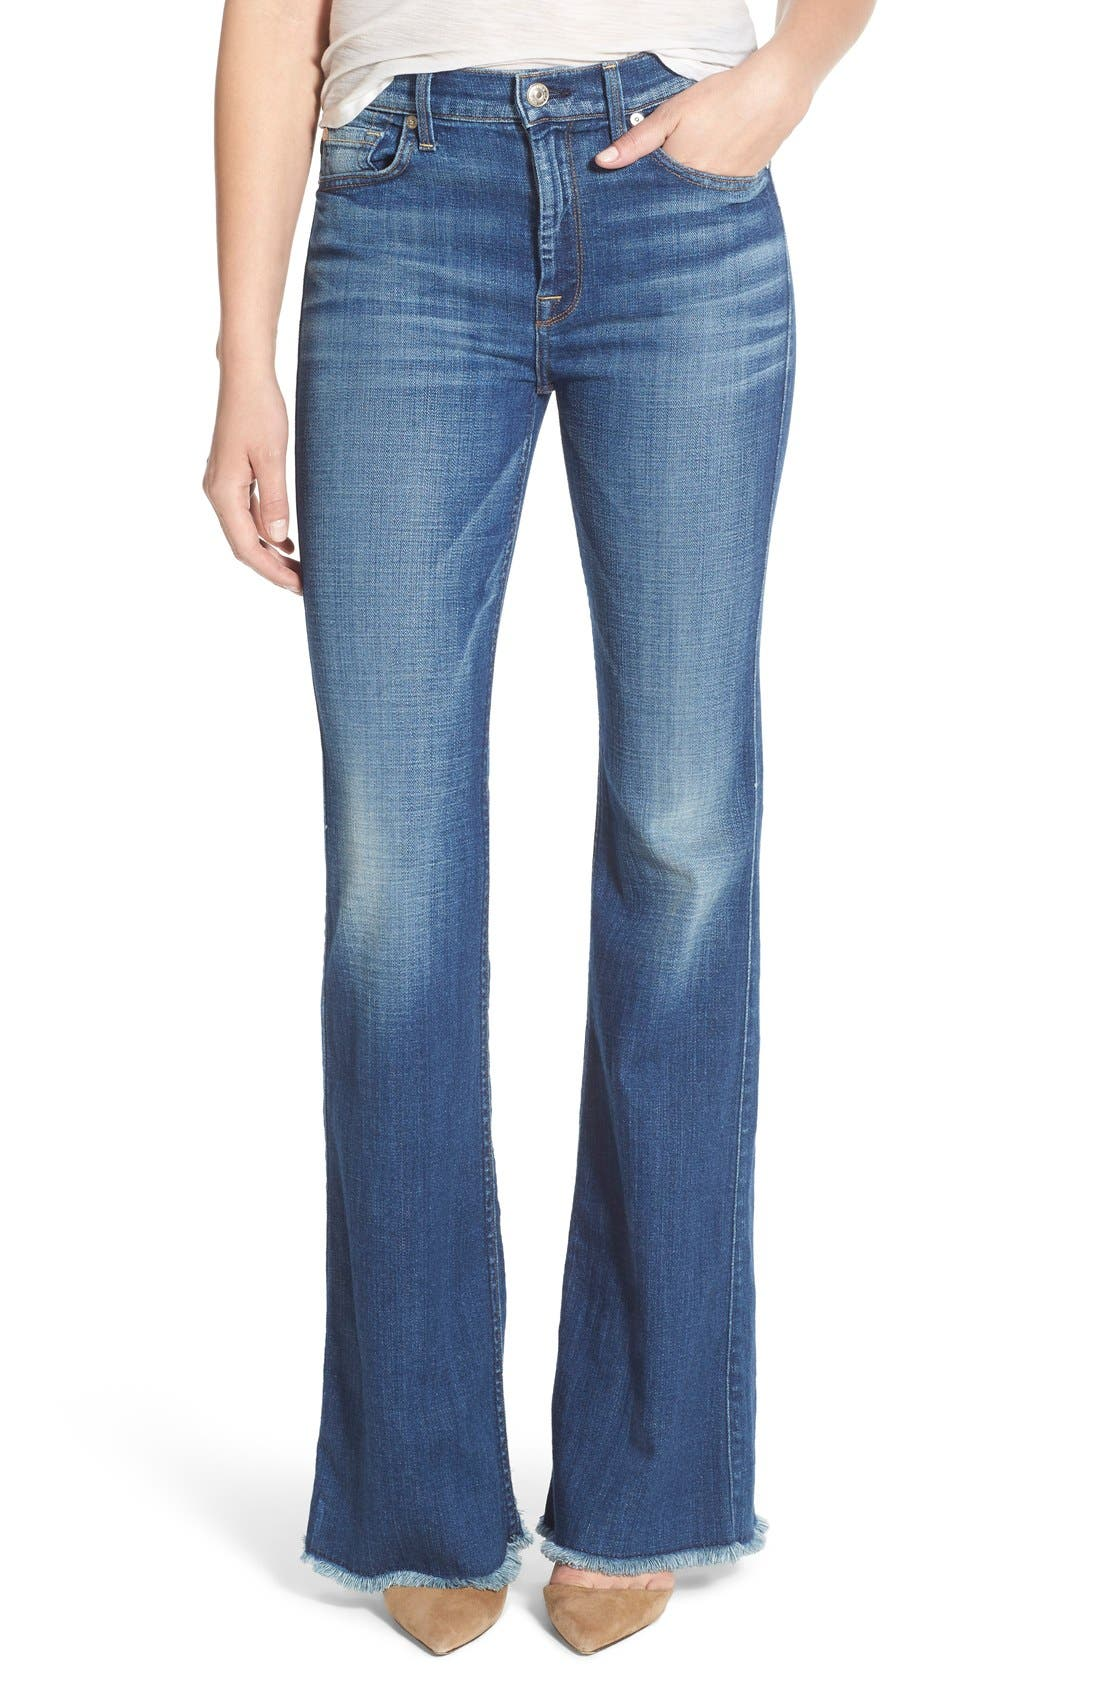 Main Image - 7 For All Mankind® 'Ginger' High Rise Raw Hem Flare Jeans (Athens Broken Twill)